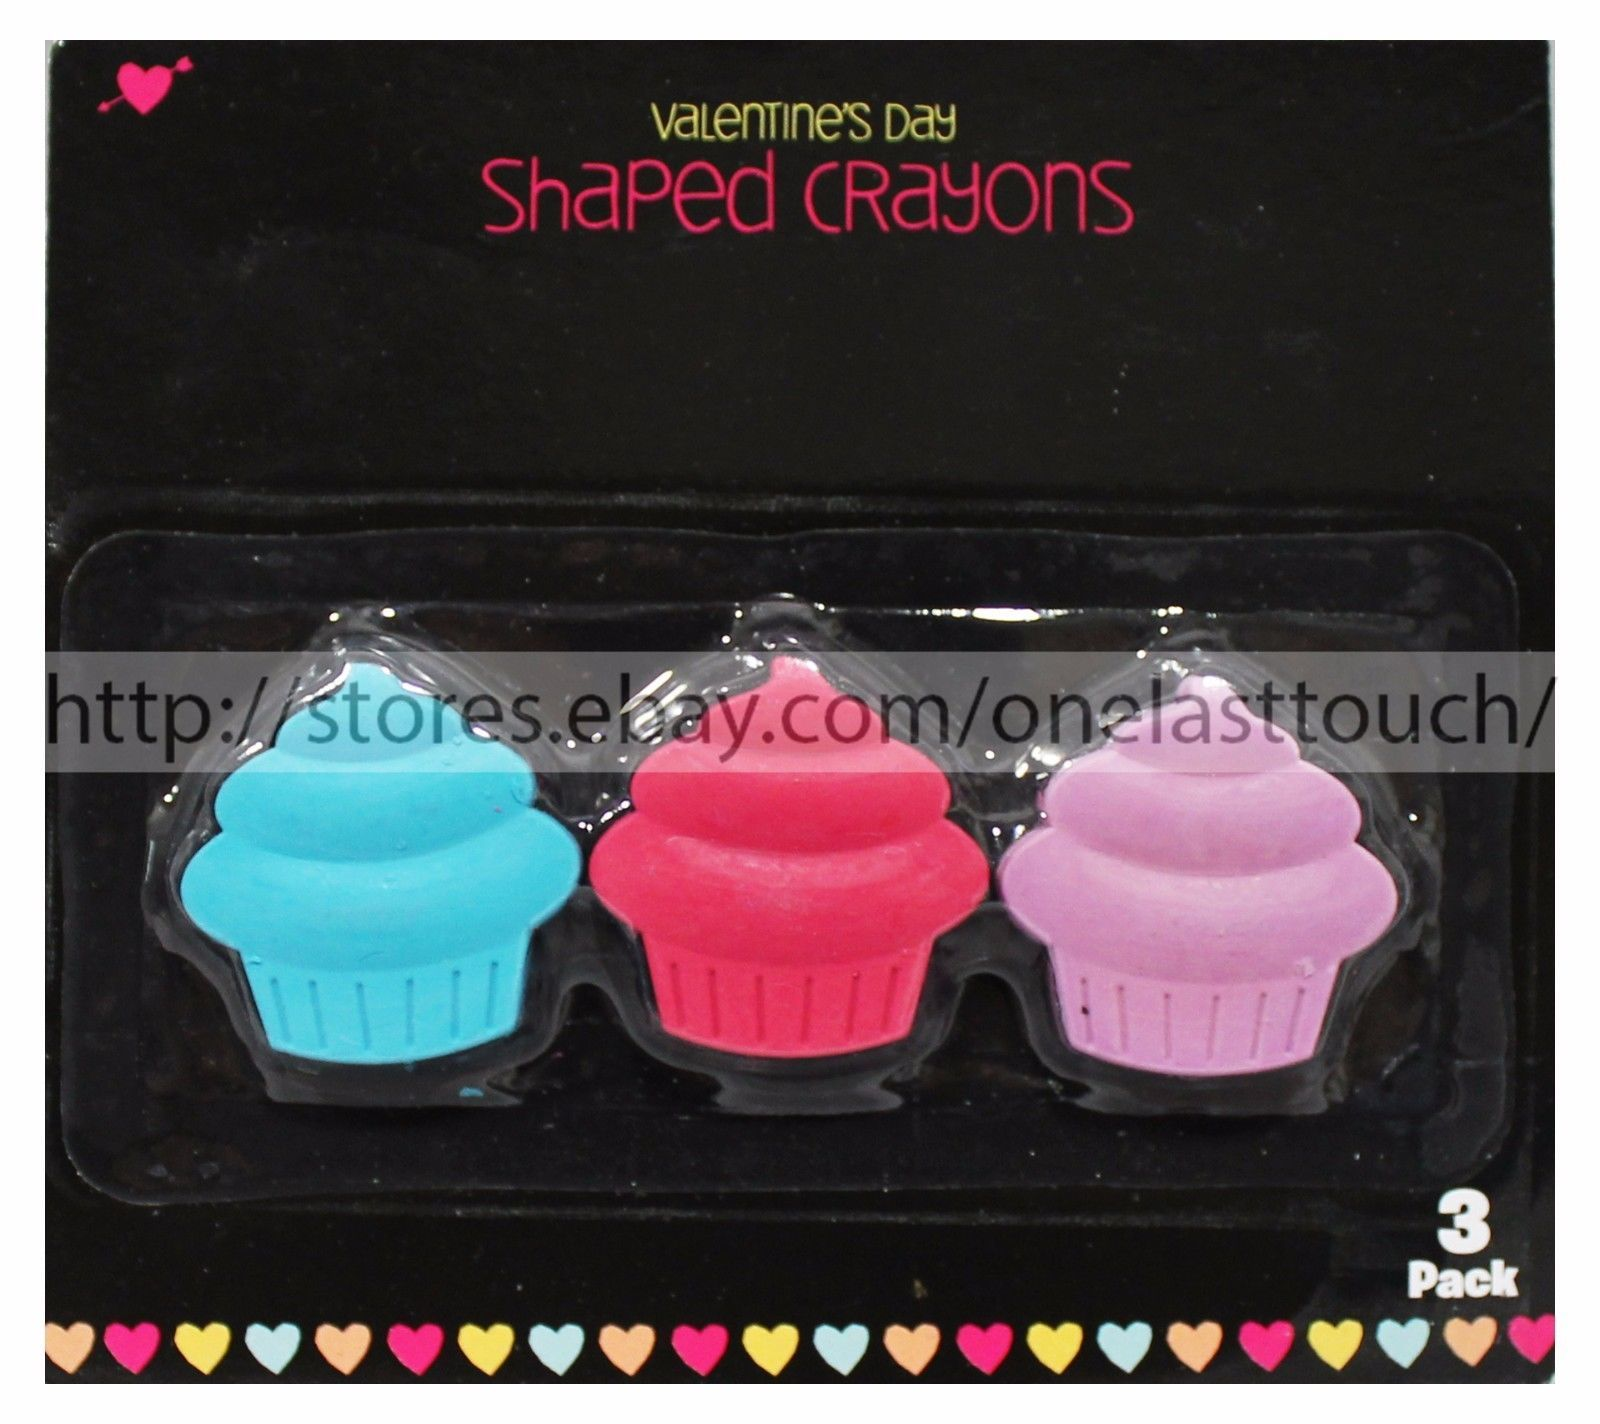 VALENTINES DAY* 3pc Set SHAPED CRAYONS Cupcakes+Hearts BAG FILLERS *YOU CHOOSE*